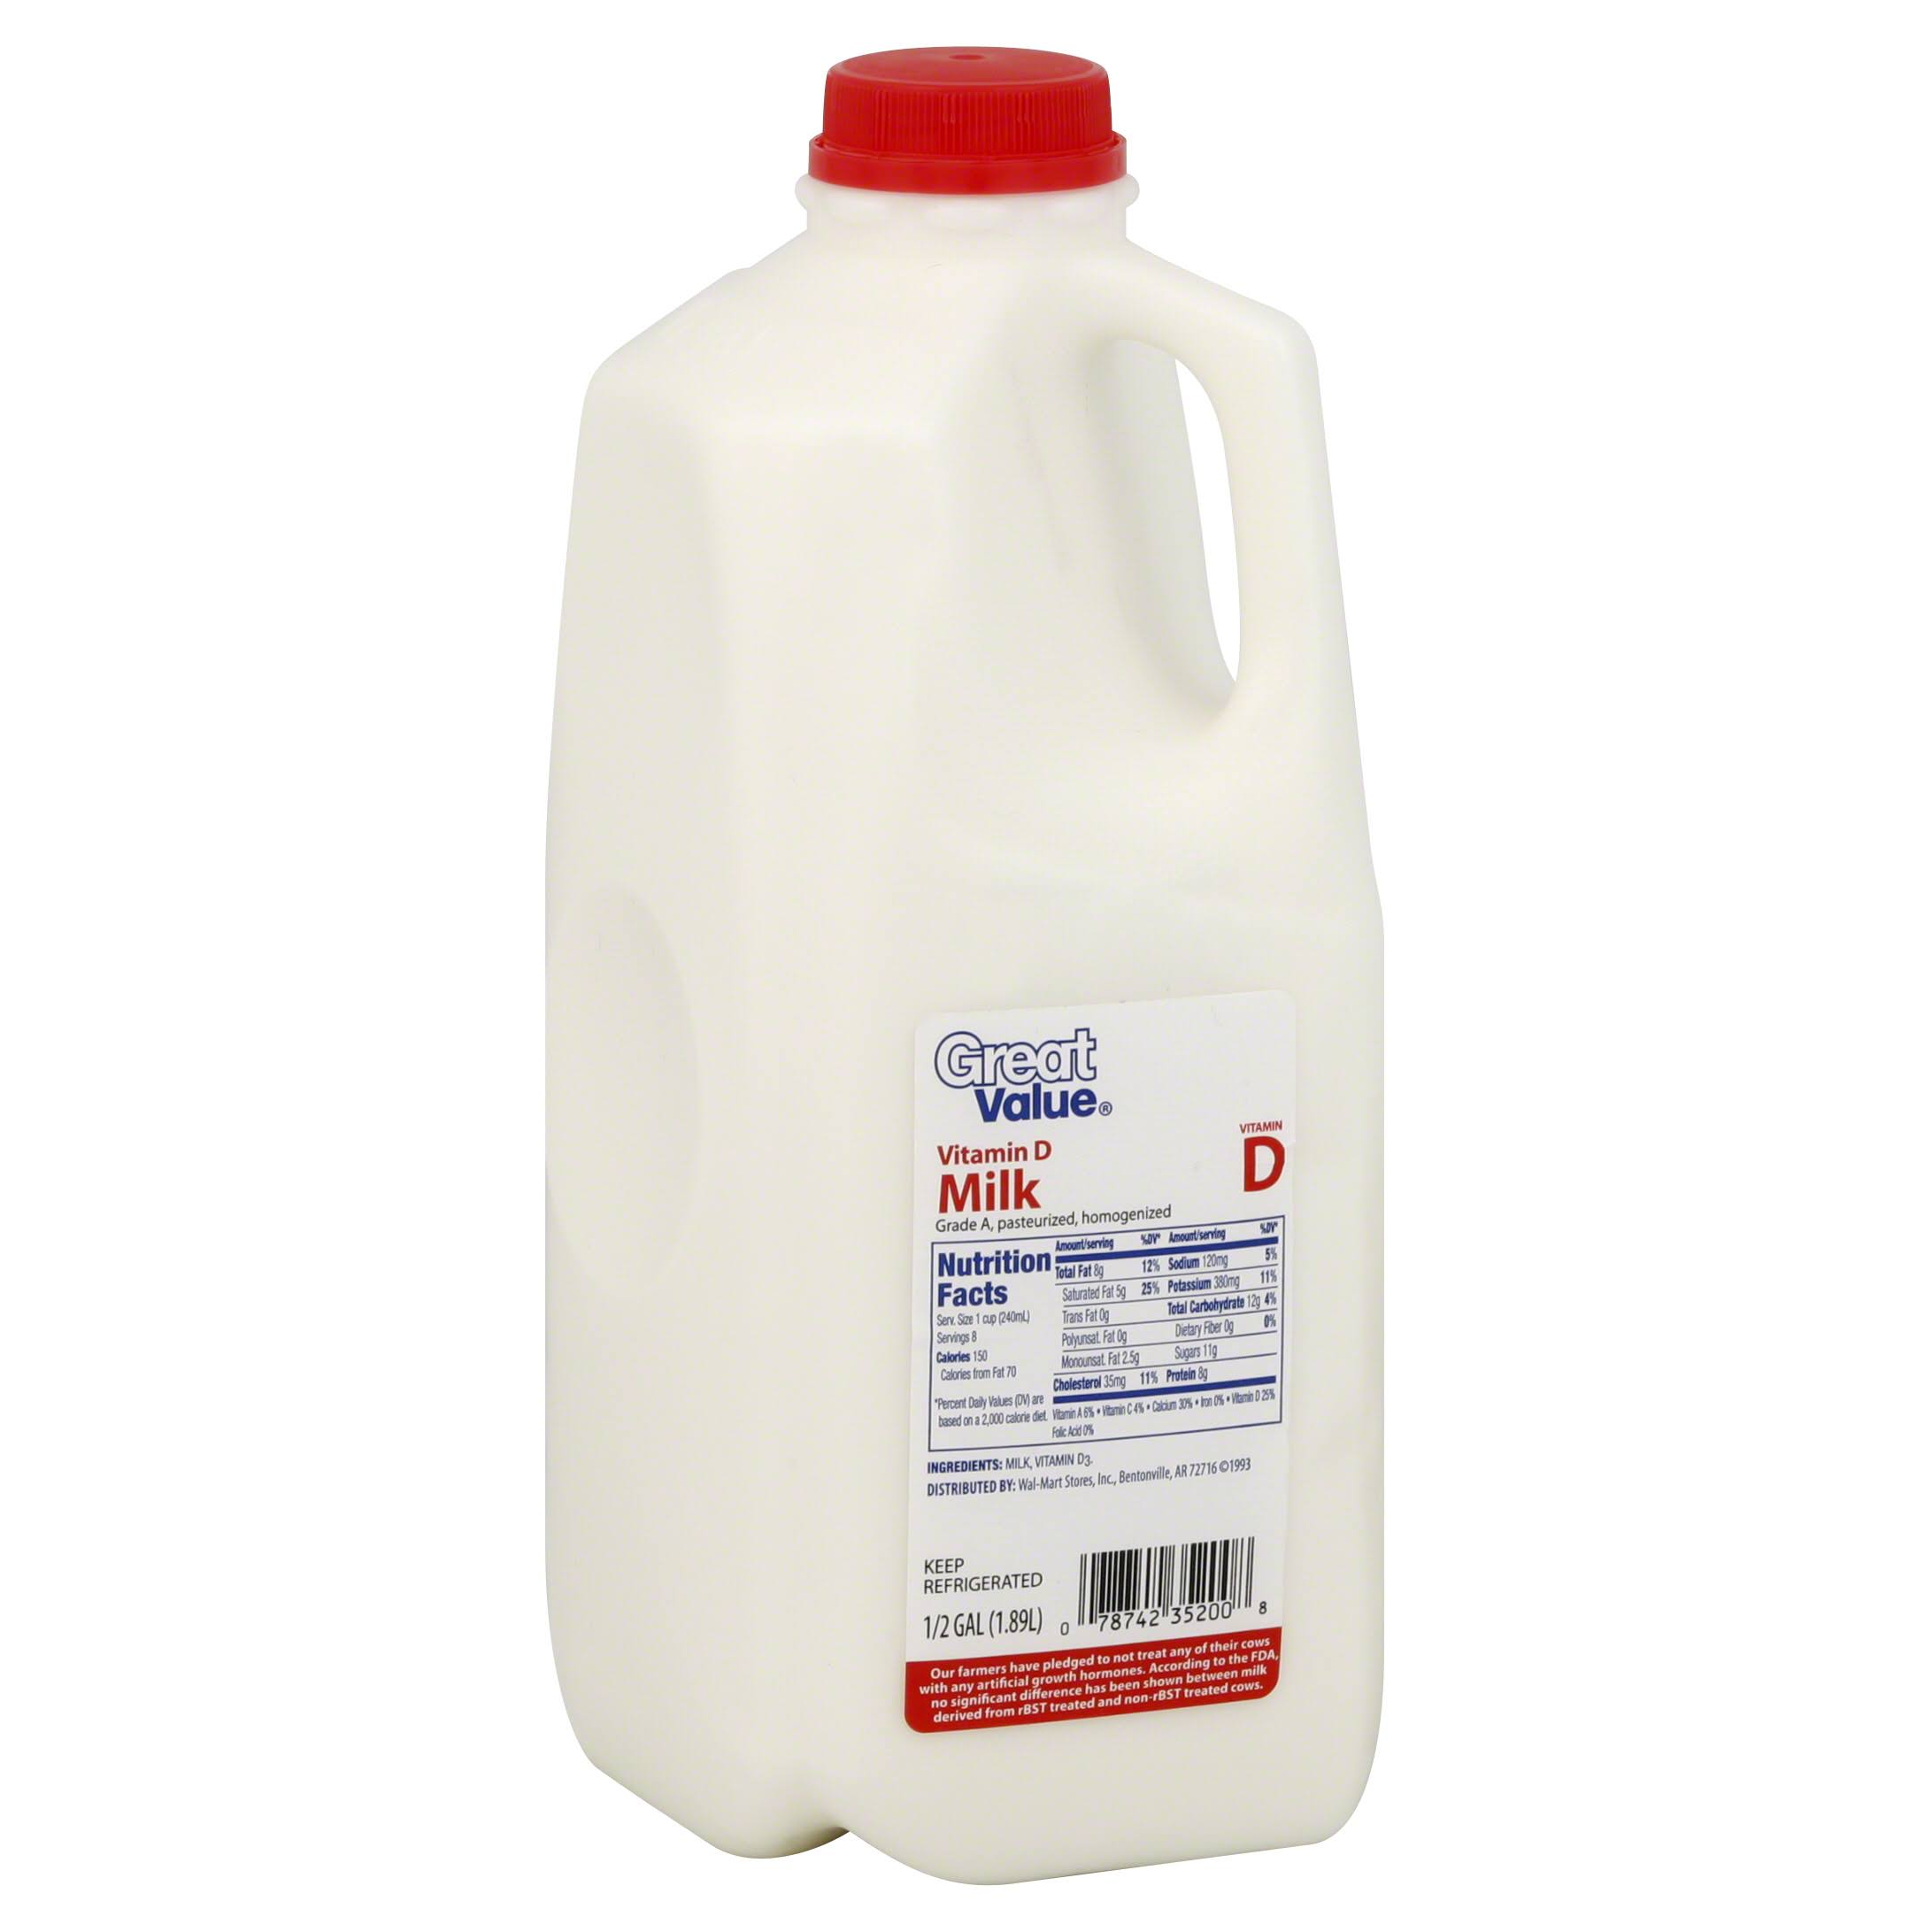 Great Value Vitamin D Milk - 1.89l